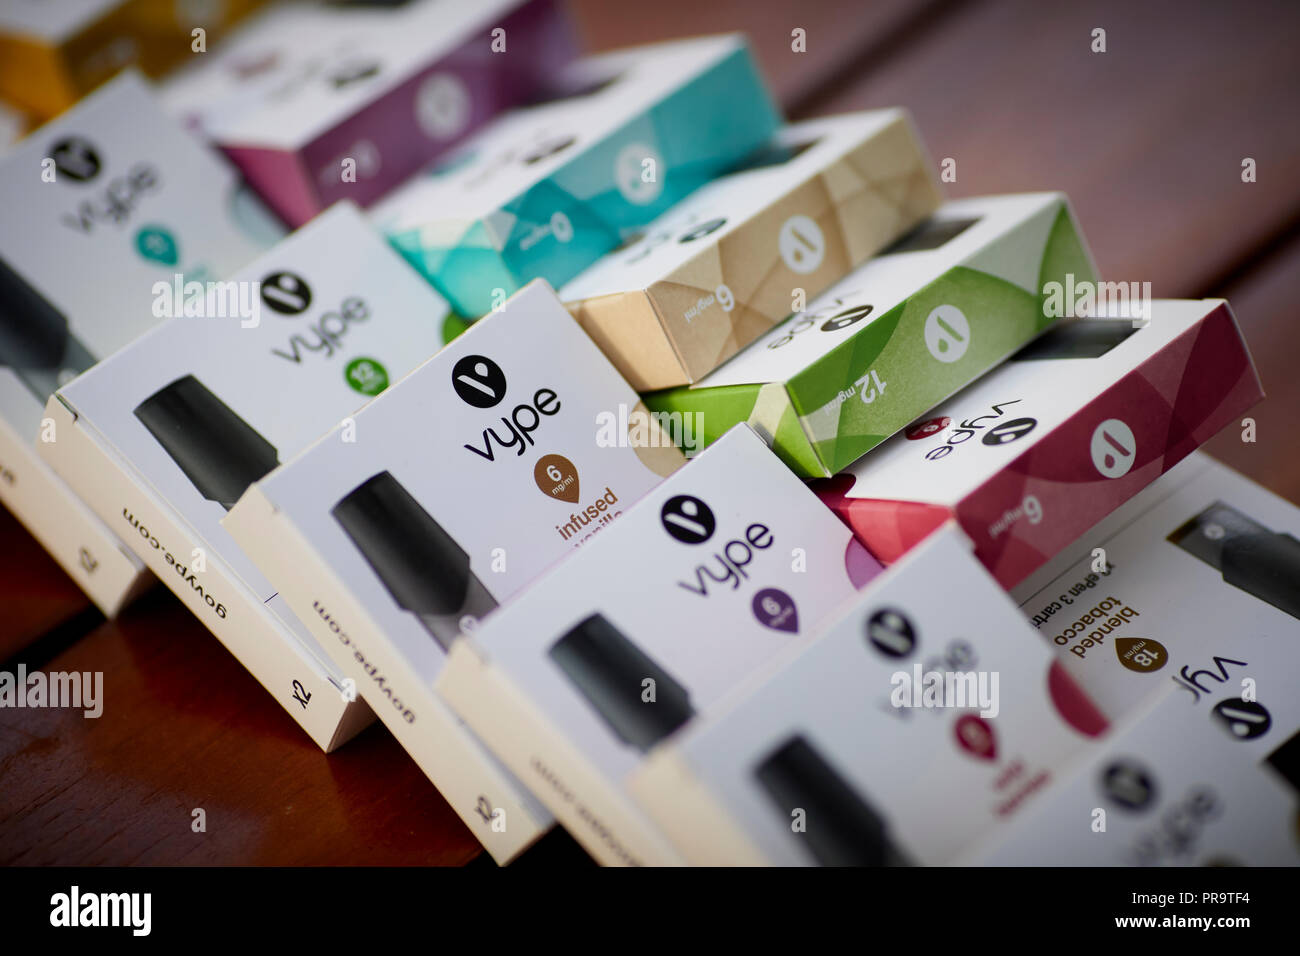 smoking Vape ePen 3 boxes packaging - Stock Image